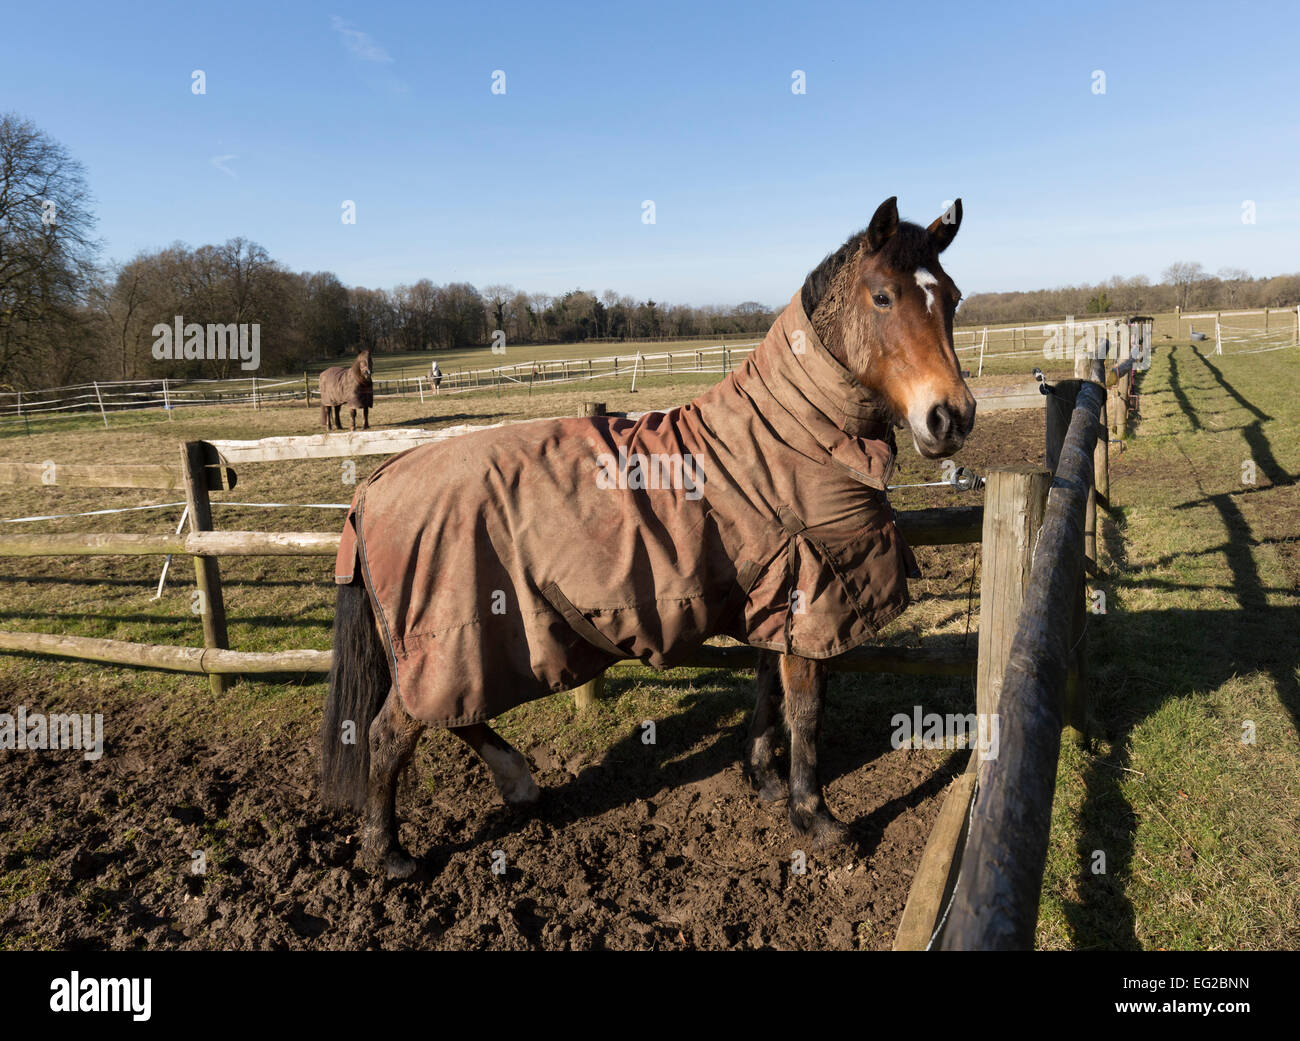 Horse in paddock with winter blanket, St Briavels, Gloucestershire, England, UK - Stock Image